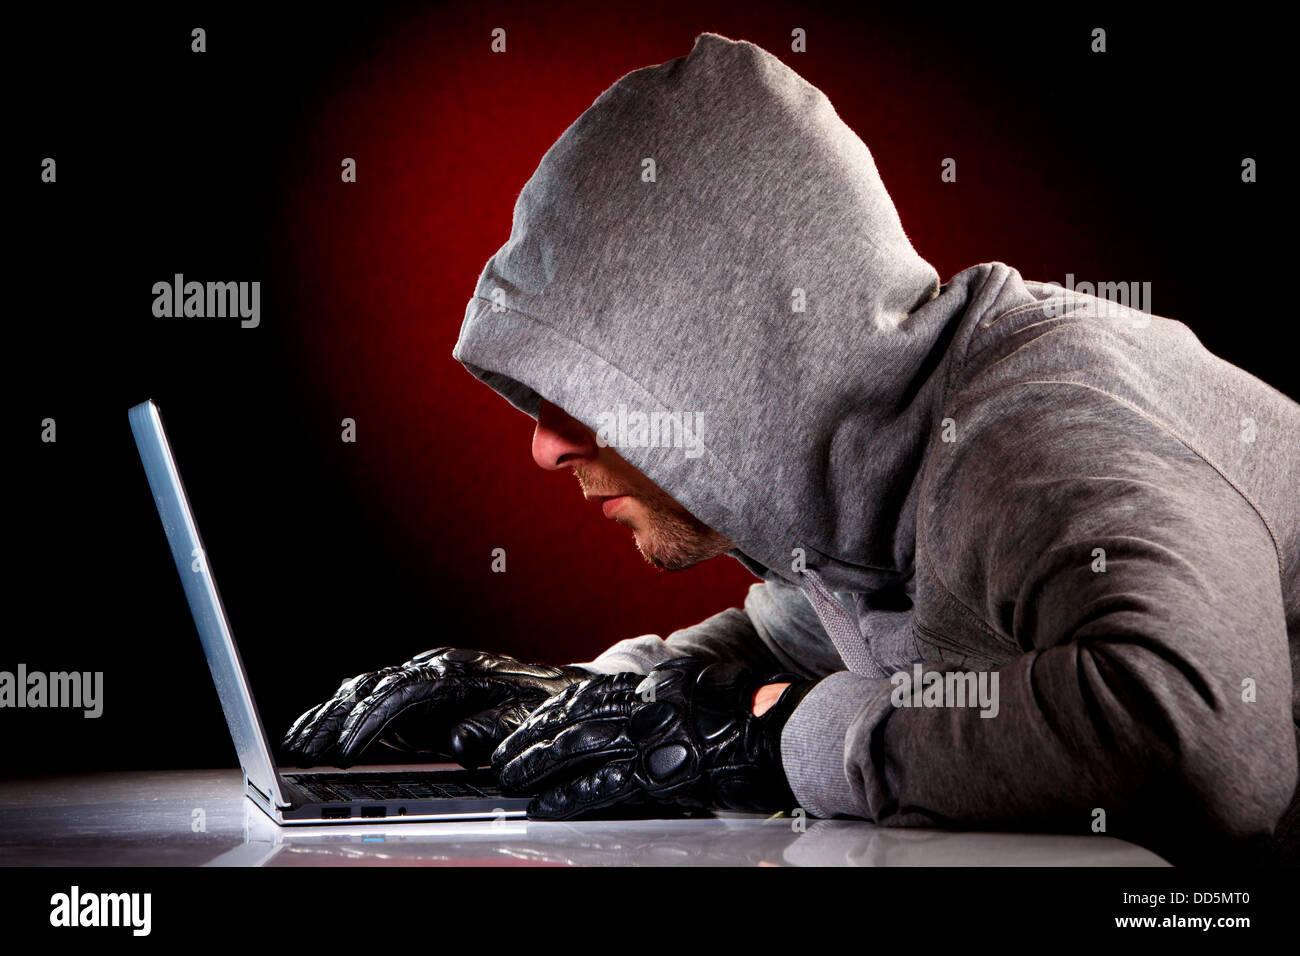 Hacker in a sunglasses with laptop. - Stock Image